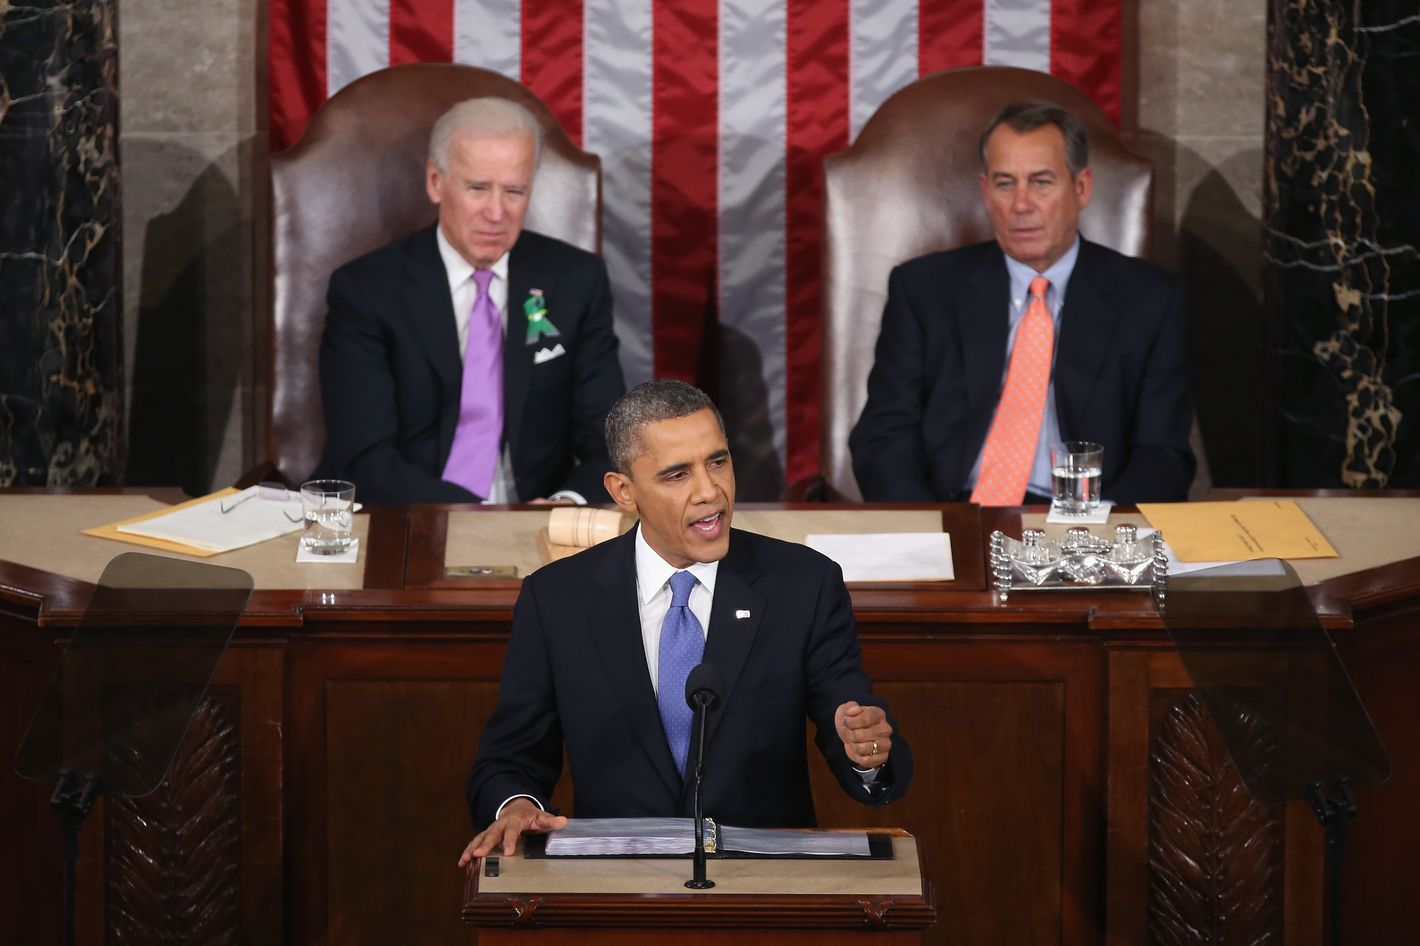 "WASHINGTON, DC - FEBRUARY 12:  Flanked by U.S. Vice President Joe Biden (L) and Speaker of the House John Boehner (R), U.S. President Barack Obama (C) delivers his State of the Union speech before a joint session of Congress at the U.S. Capitol February 12, 2013 in Washington, DC. Facing a divided Congress, Obama concentrated his speech on new initiatives designed to stimulate the U.S. economy and said, ""It's not a bigger government we need, but a smarter government that sets priorities and invests in broad-based growth"".  (Photo by Mark Wilson/Getty Images)"